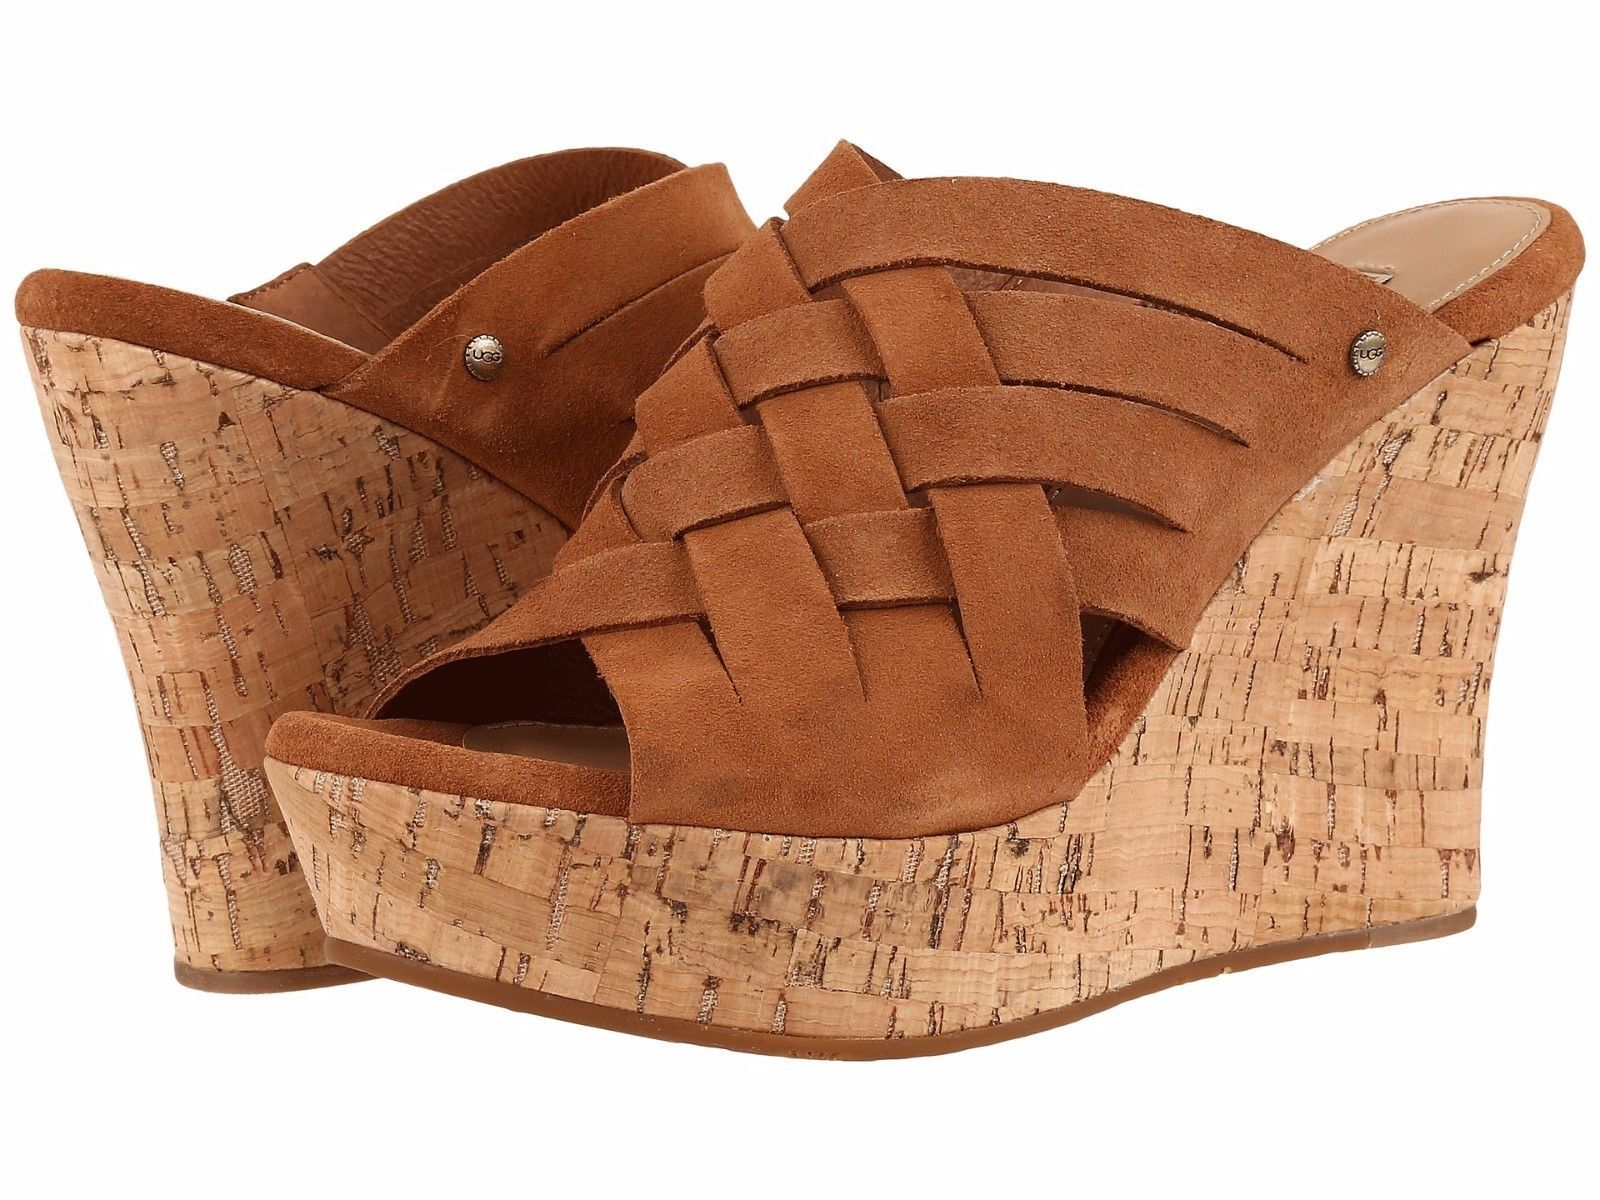 Primary image for Women's UGG® Marta High Wedge Sandals, 1015079 Sizes 7-11 Chestnut Authentic